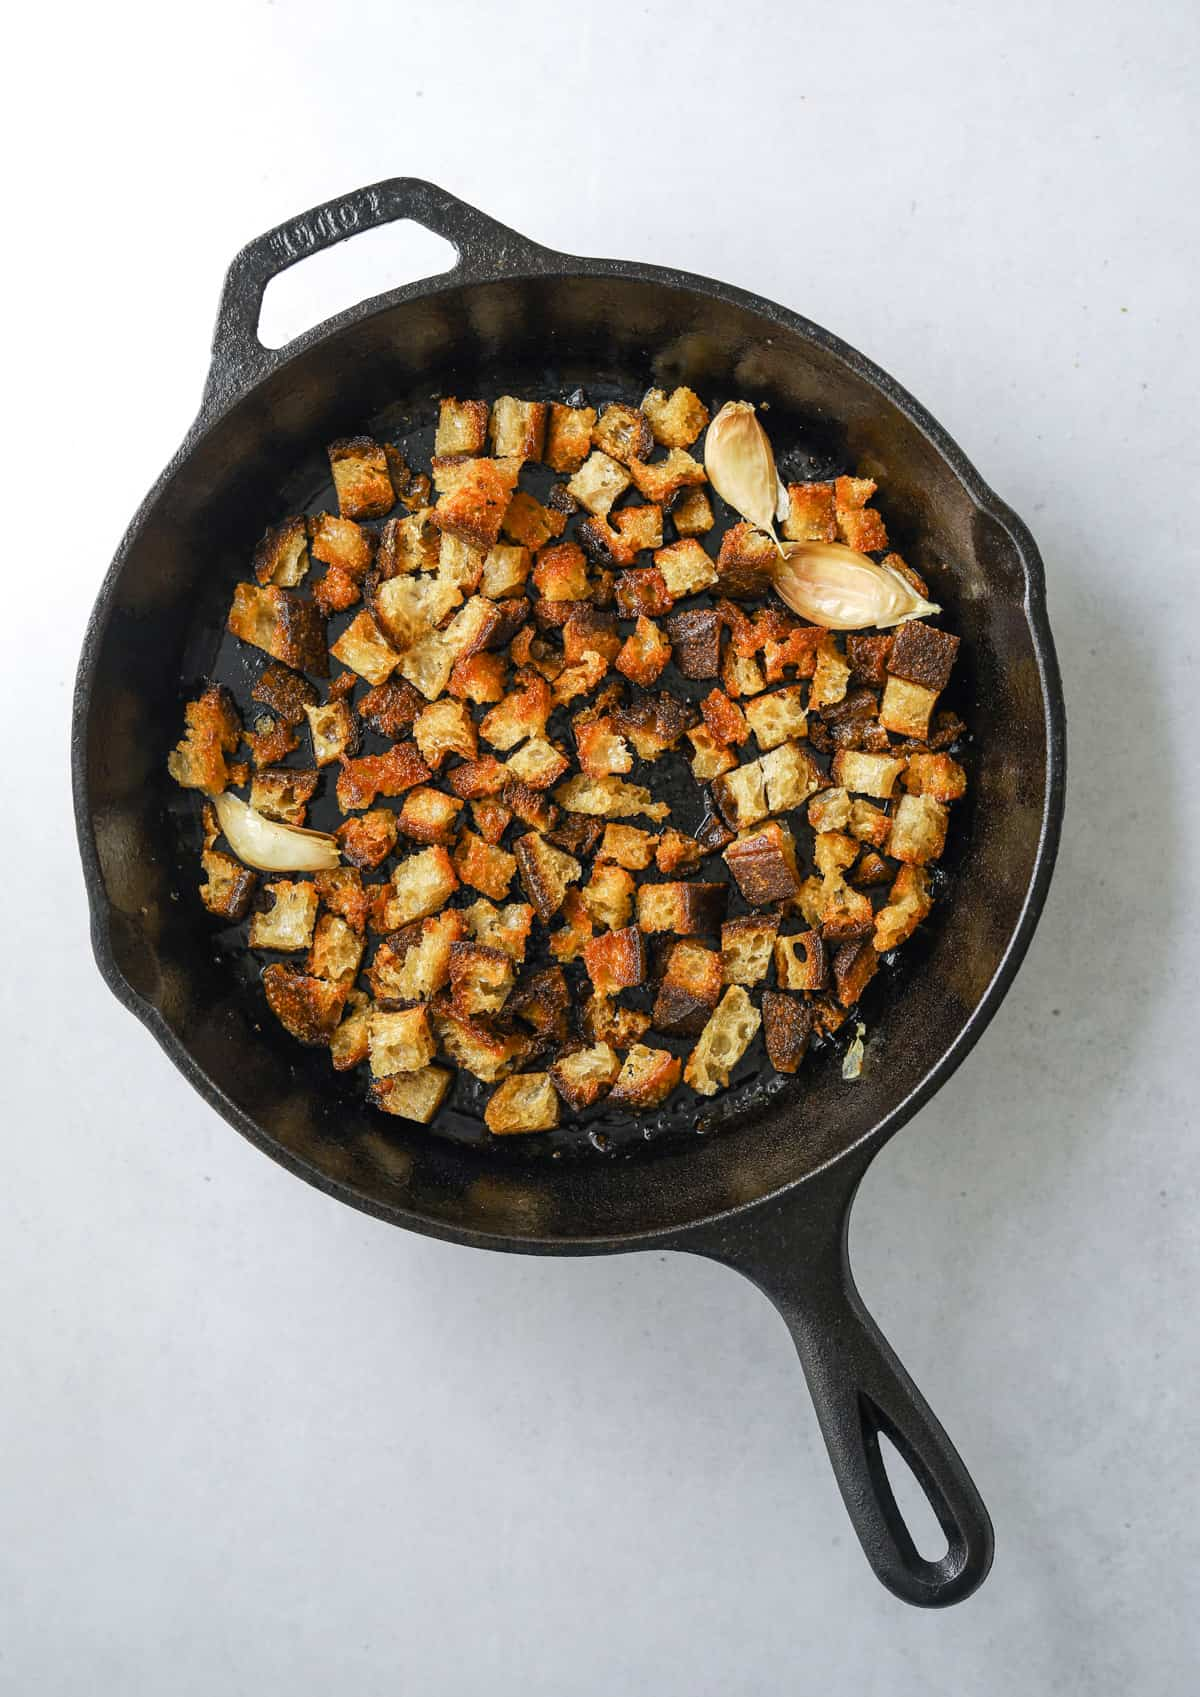 cubed crouton and whole garlic cloves cooking in a cast iron pan.